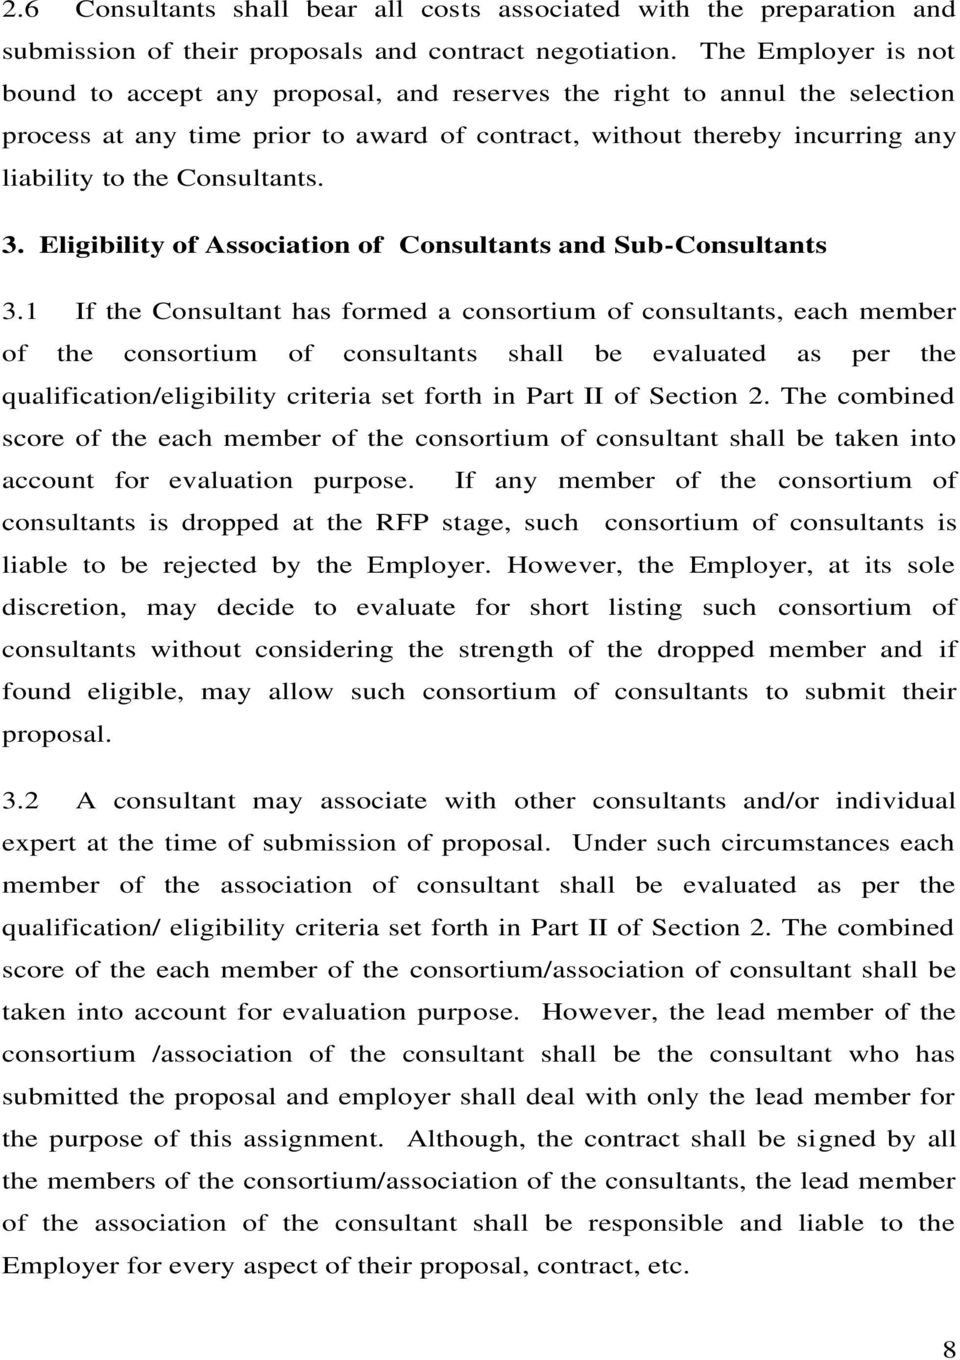 Consultants. 3. Eligibility of Association of Consultants and Sub-Consultants 3.